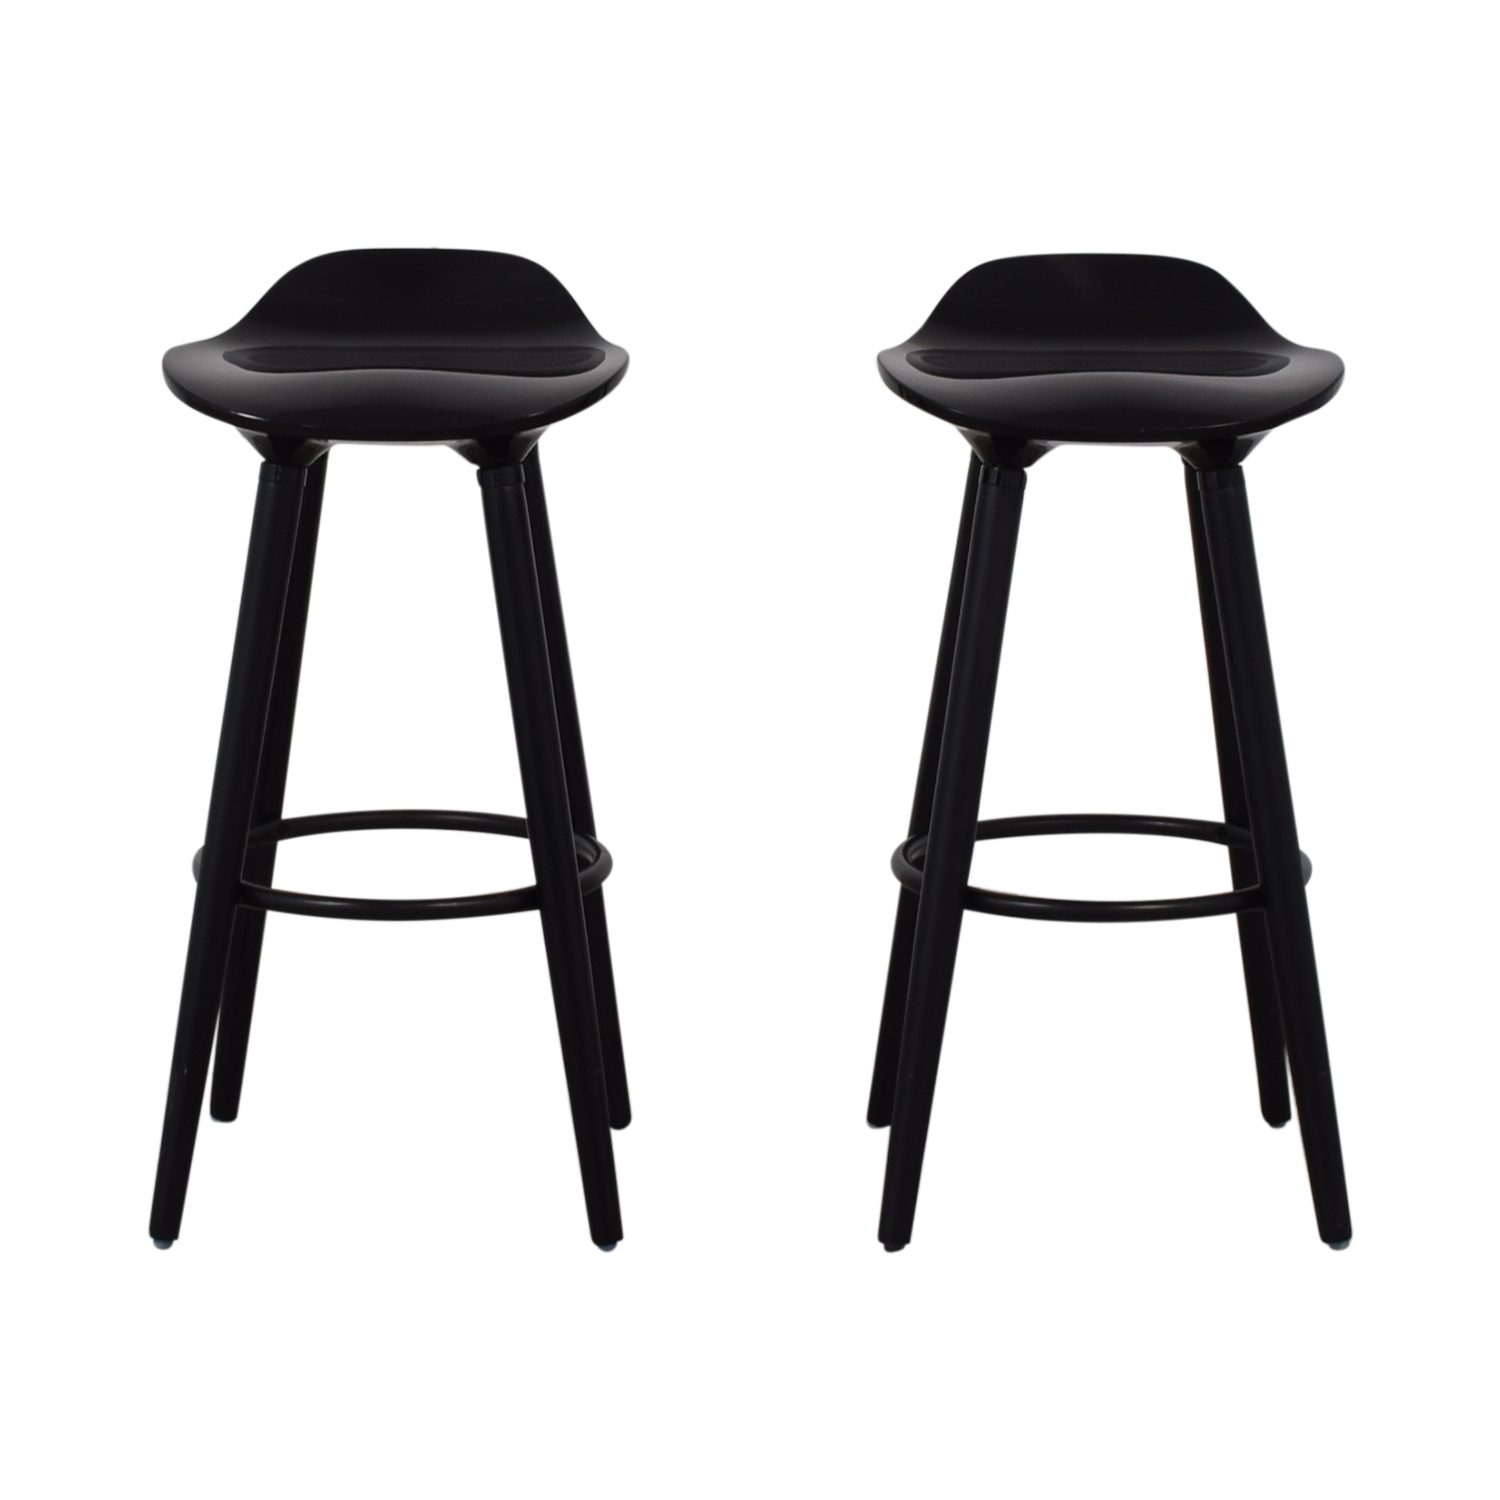 buy Sleek Black Modern Bar Stools